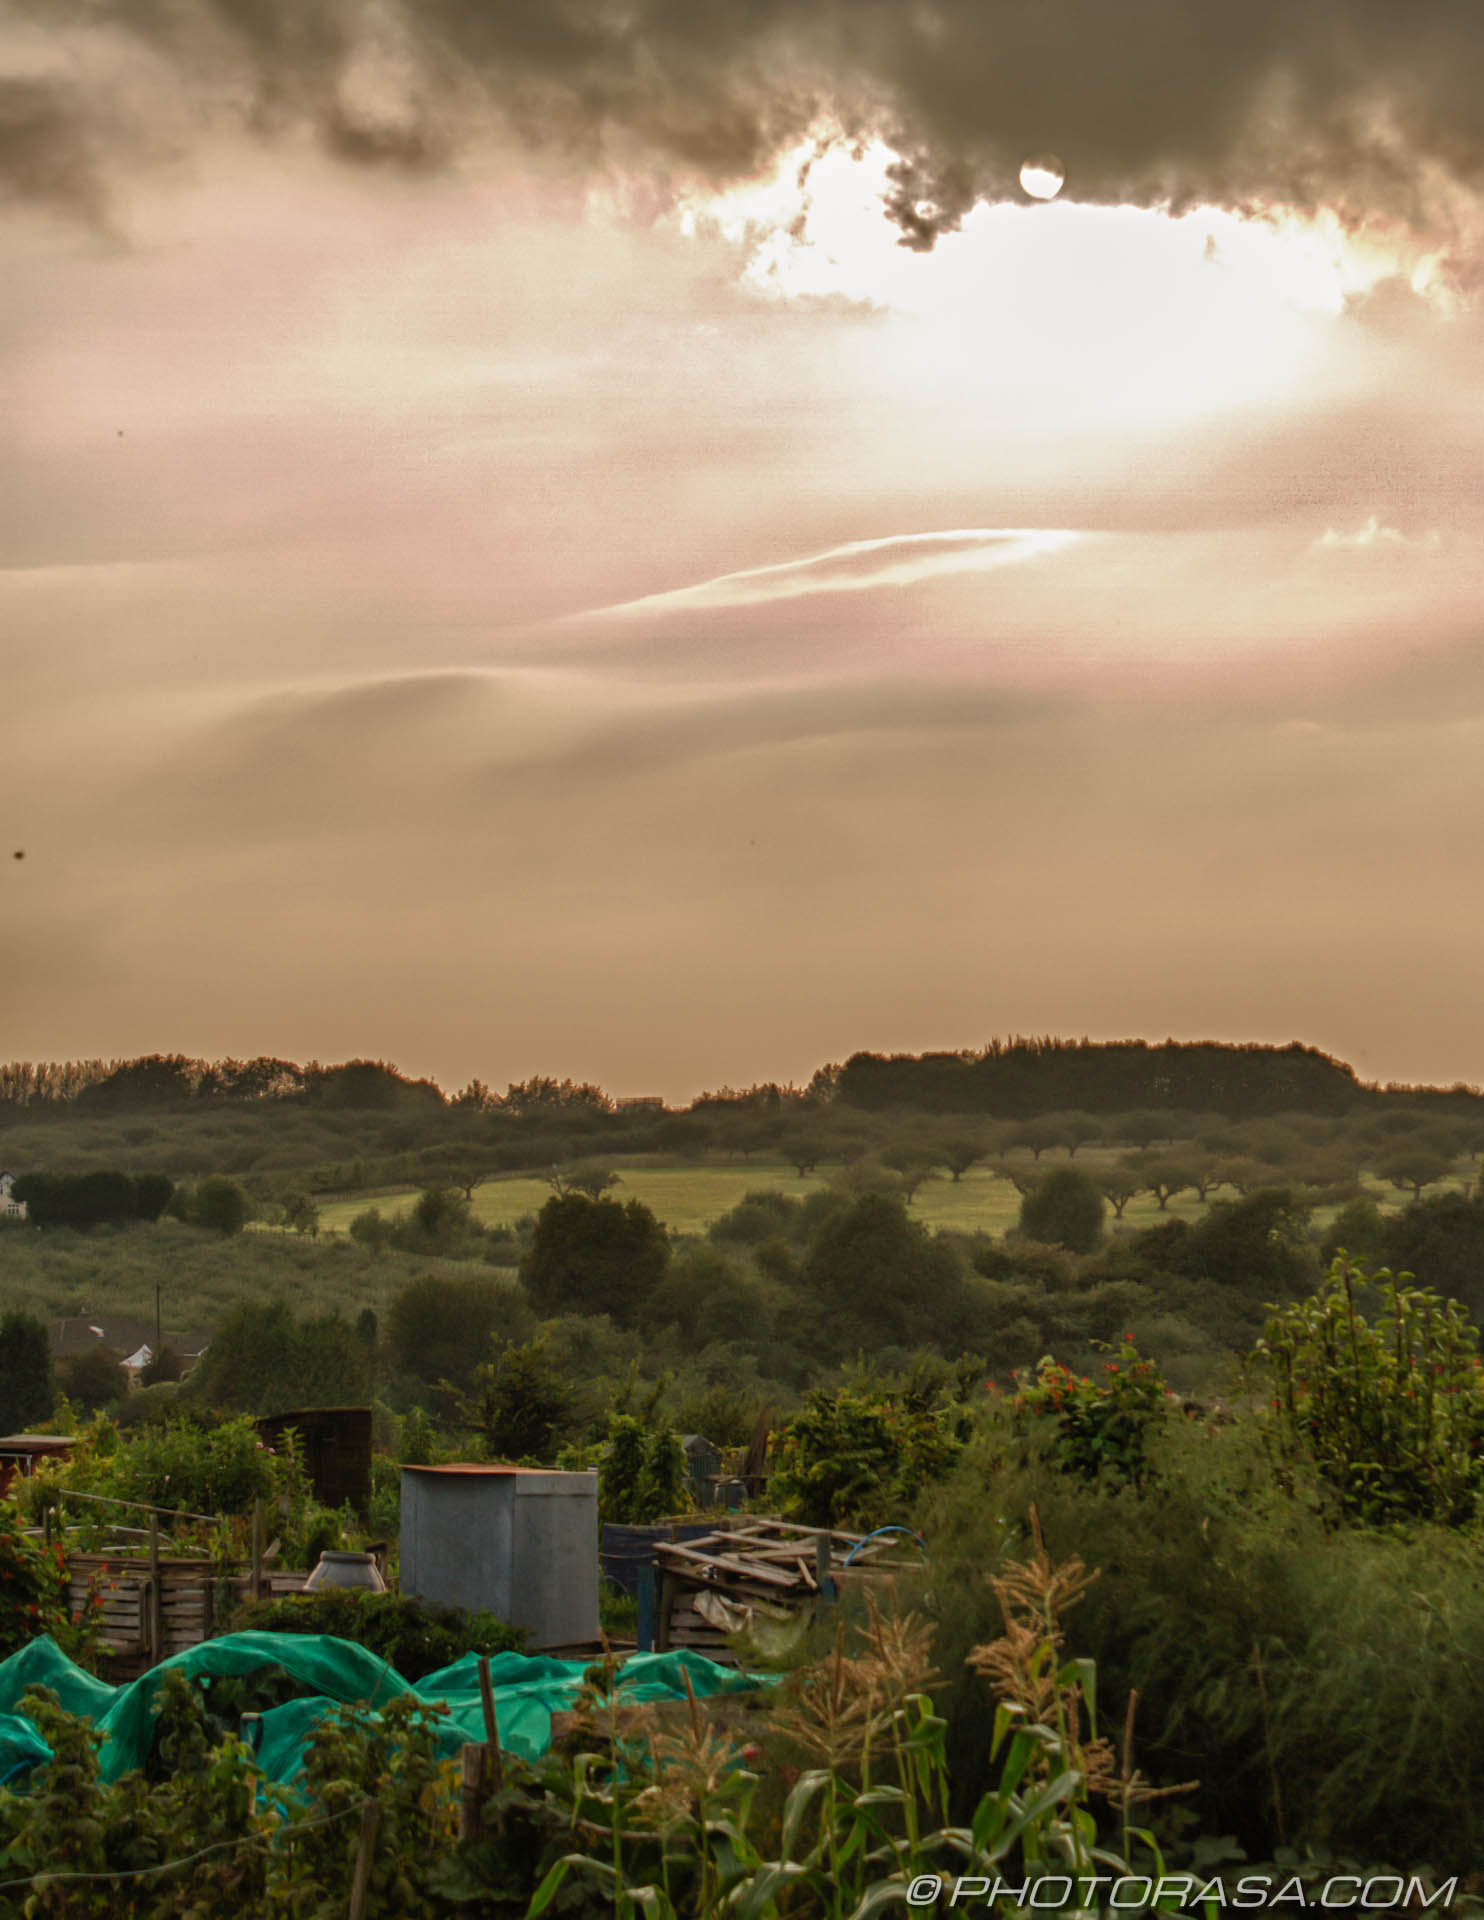 http://photorasa.com/loose-village/sun-over-cloudy-haze-kentish-fields/